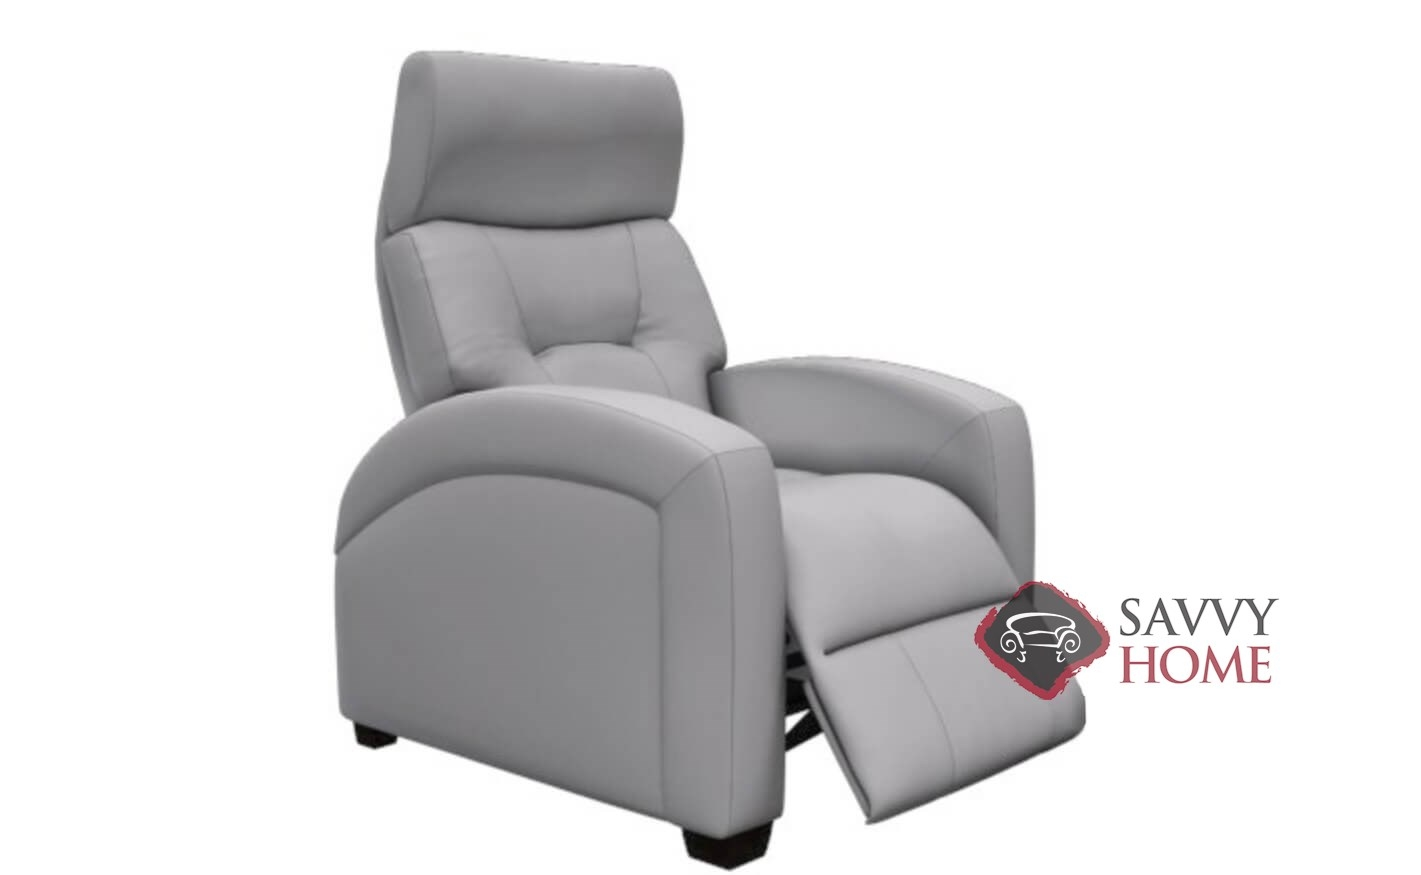 Surprising Quick Ship Zg5 By Palliser Fabric Reclining Chair In Bela Grey By Palliser With Fast Shipping Savvyhomestore Com Machost Co Dining Chair Design Ideas Machostcouk